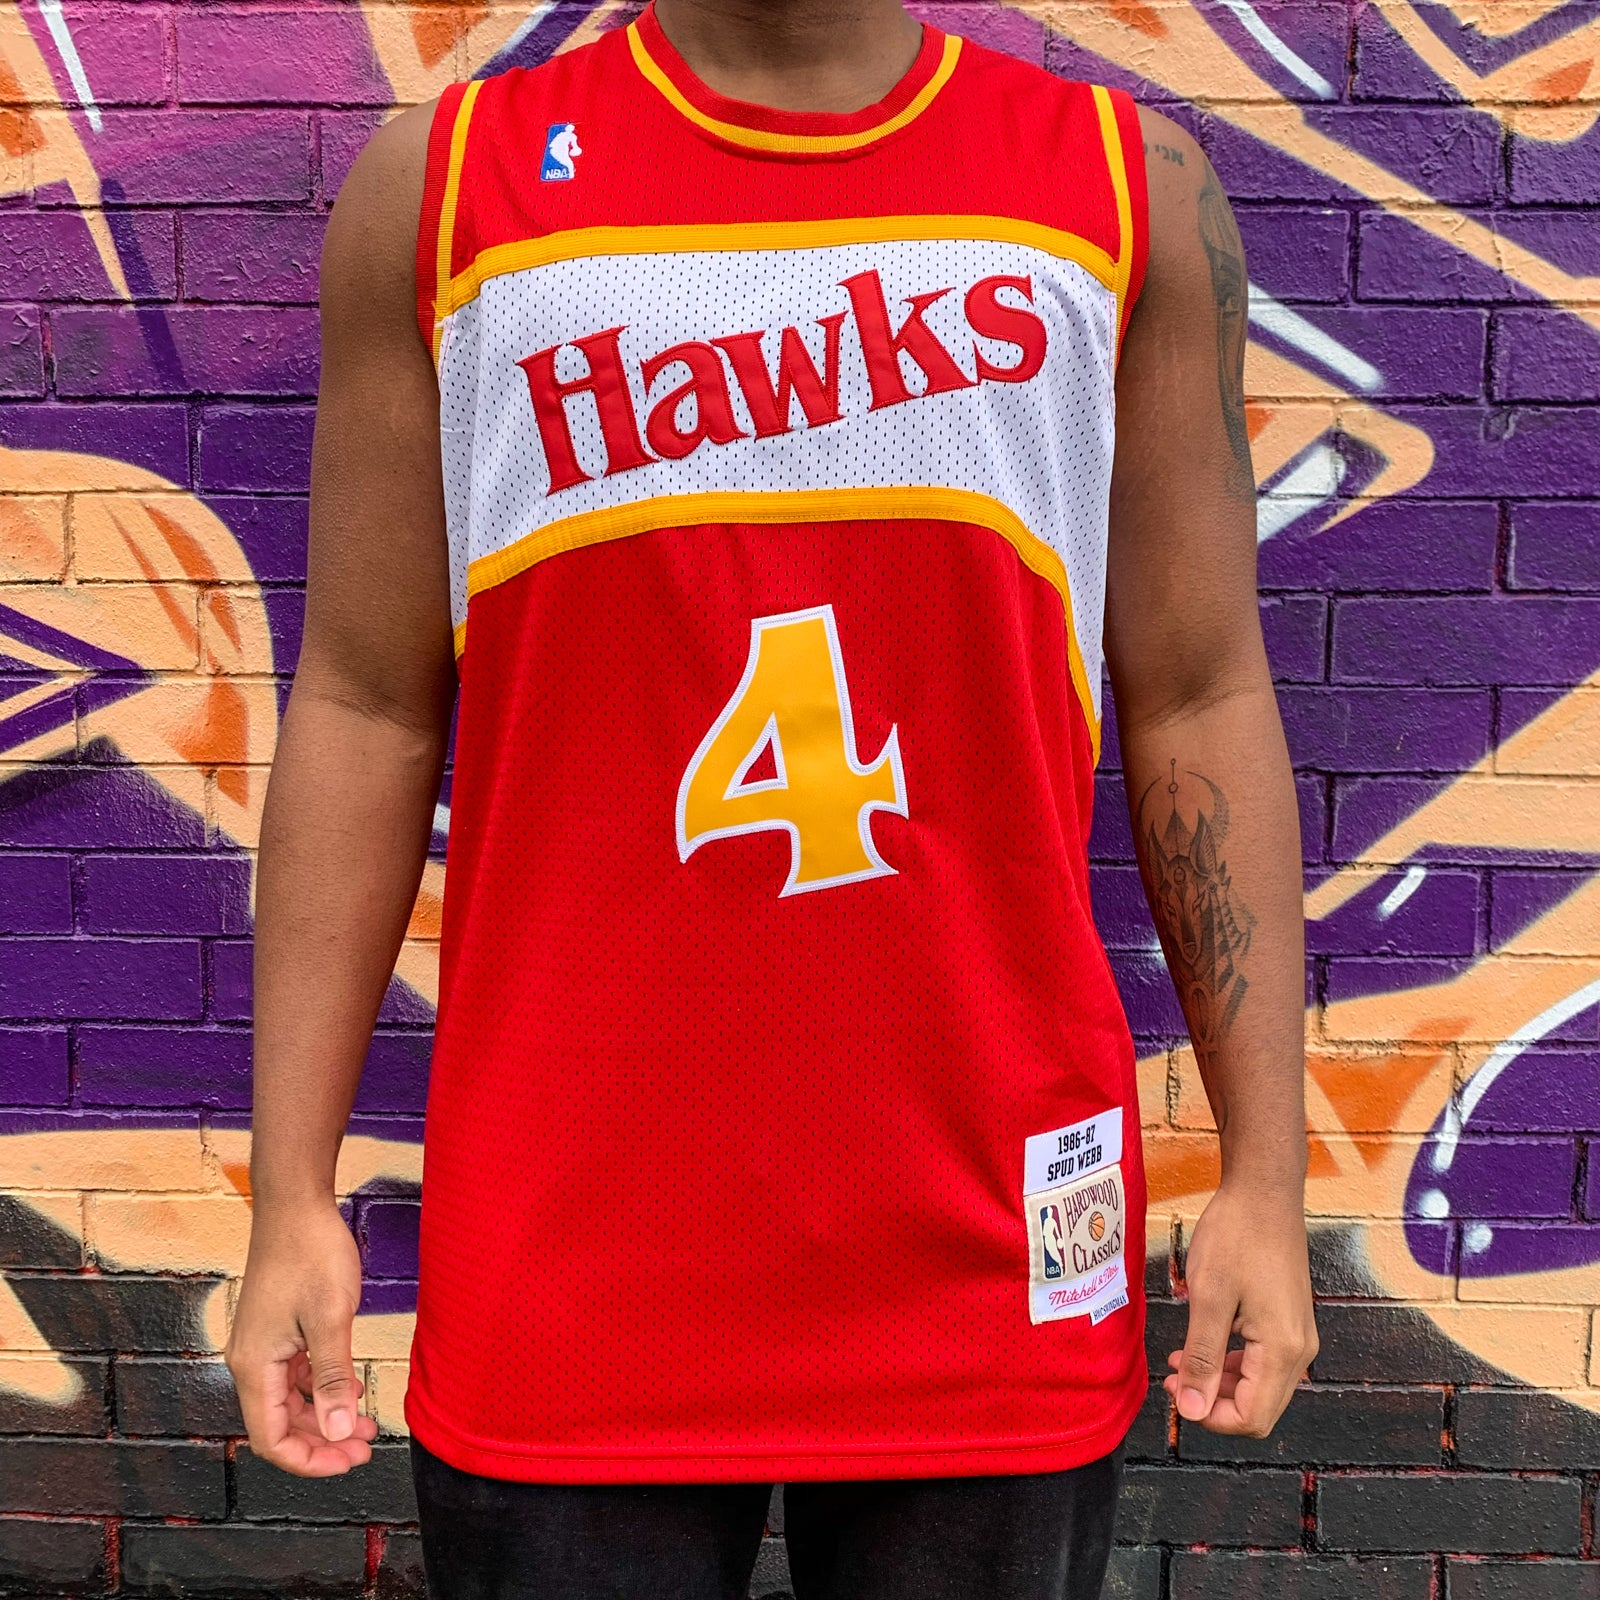 RETRO ATLANTA HAWKS RED BASKETBALL JERSEY - SPUB WEBB 4